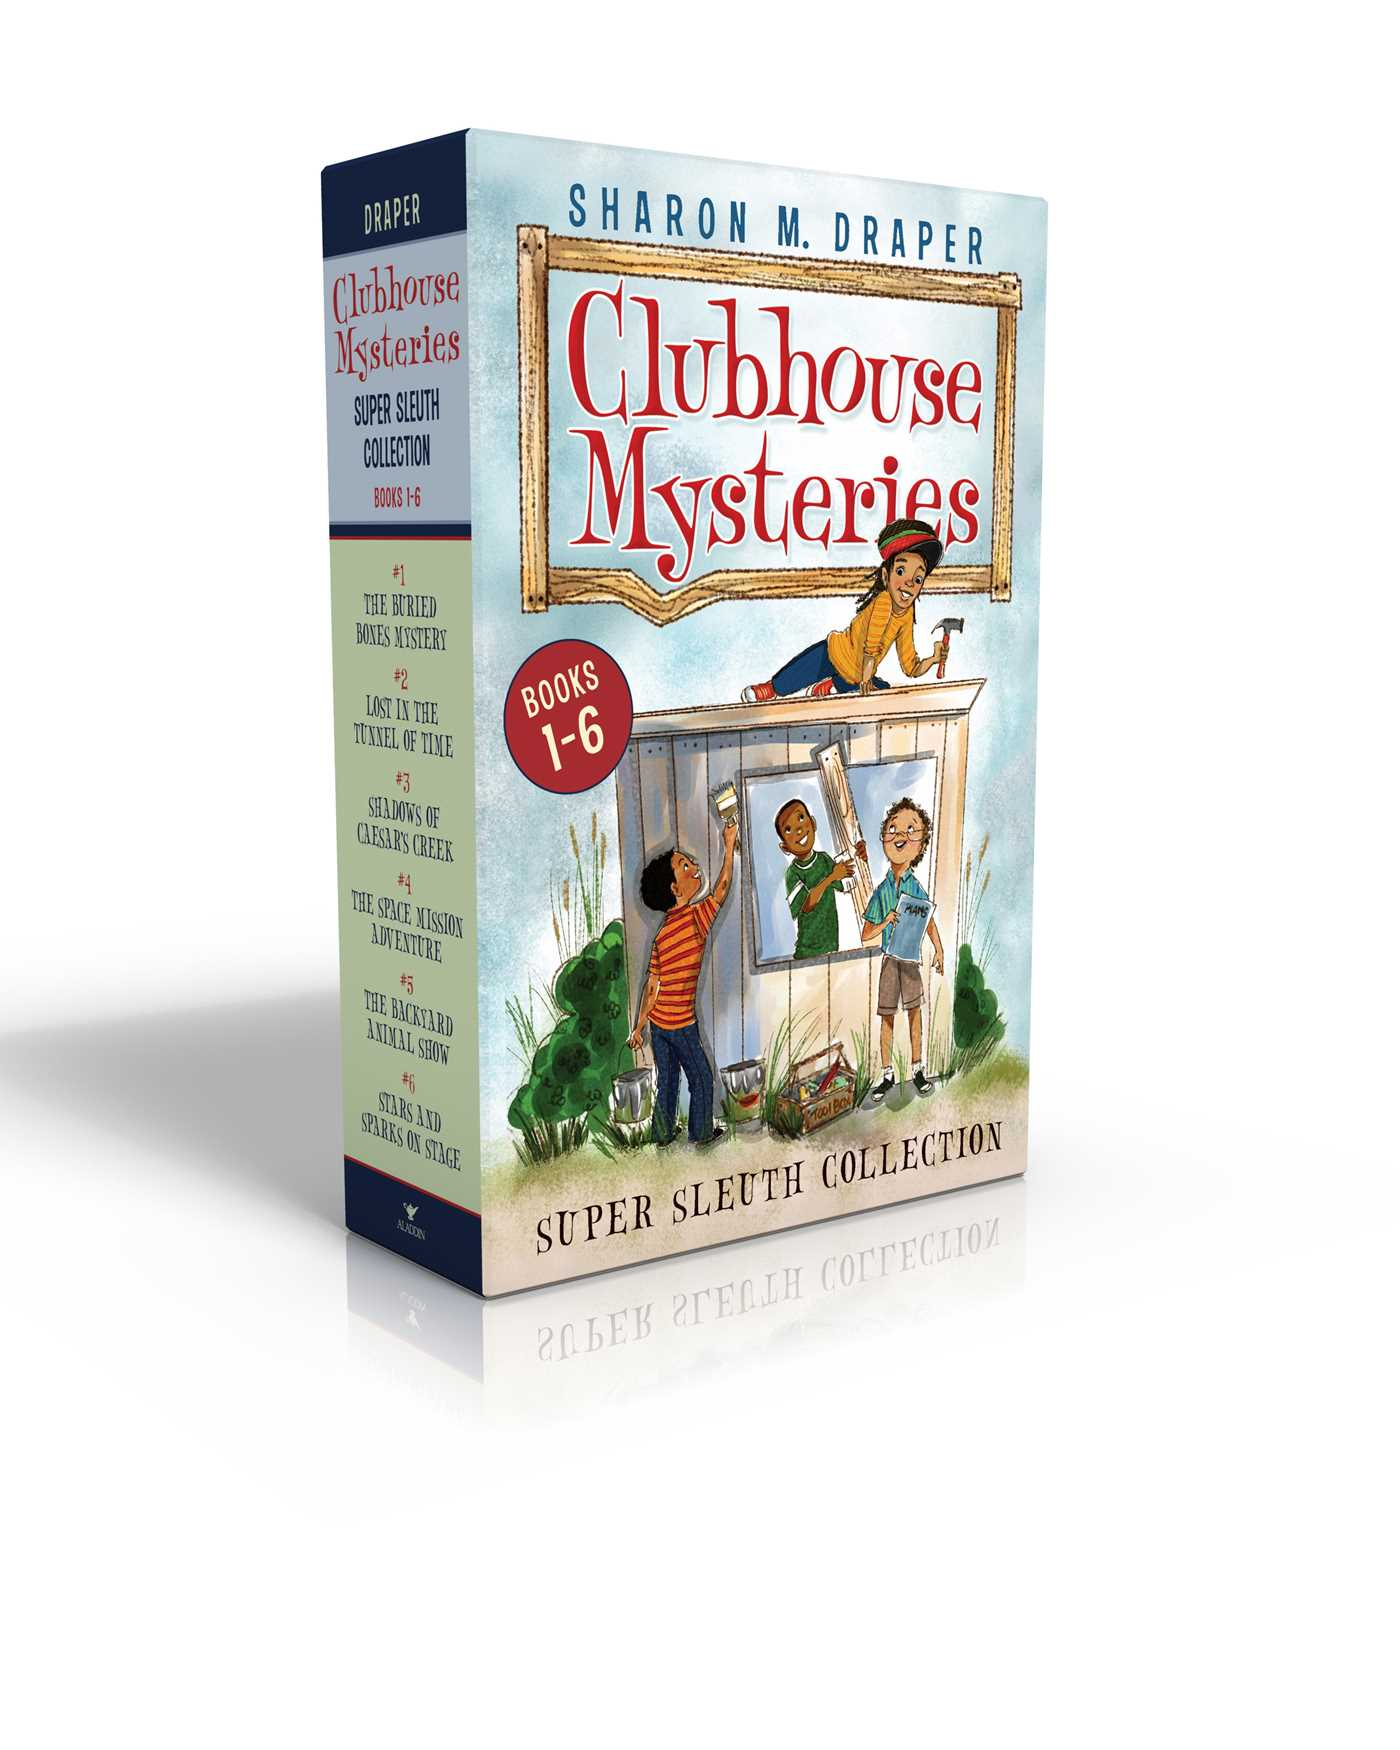 Clubhouse mysteries super sleuth collection 9781481496957 hr